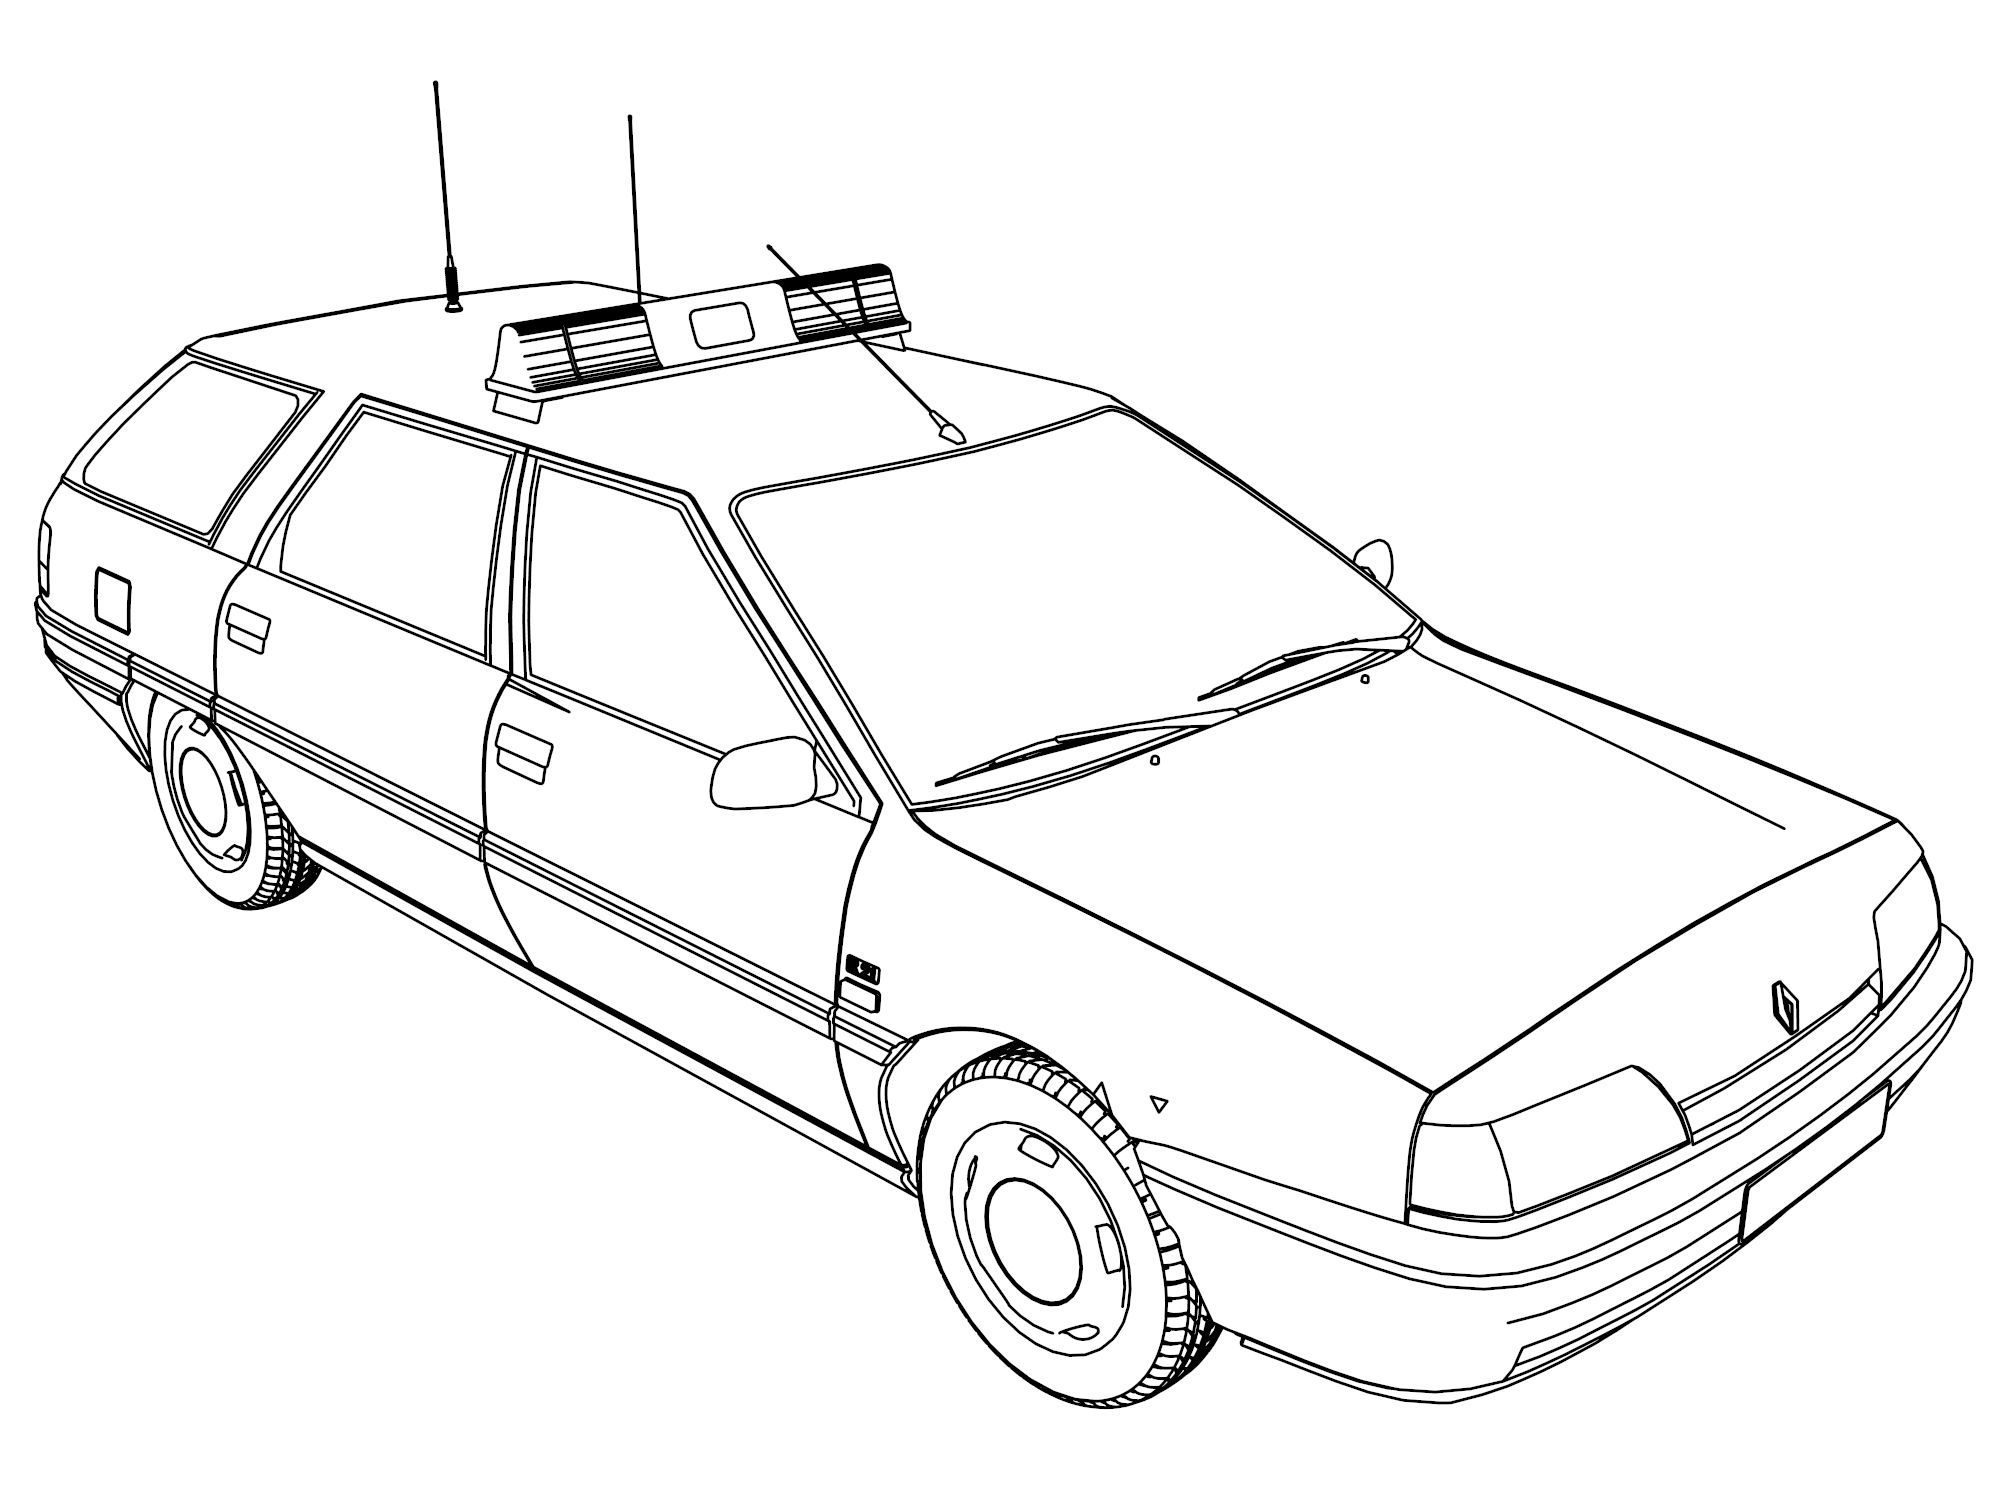 Police Car Coloring Pages Printable at GetColorings.com